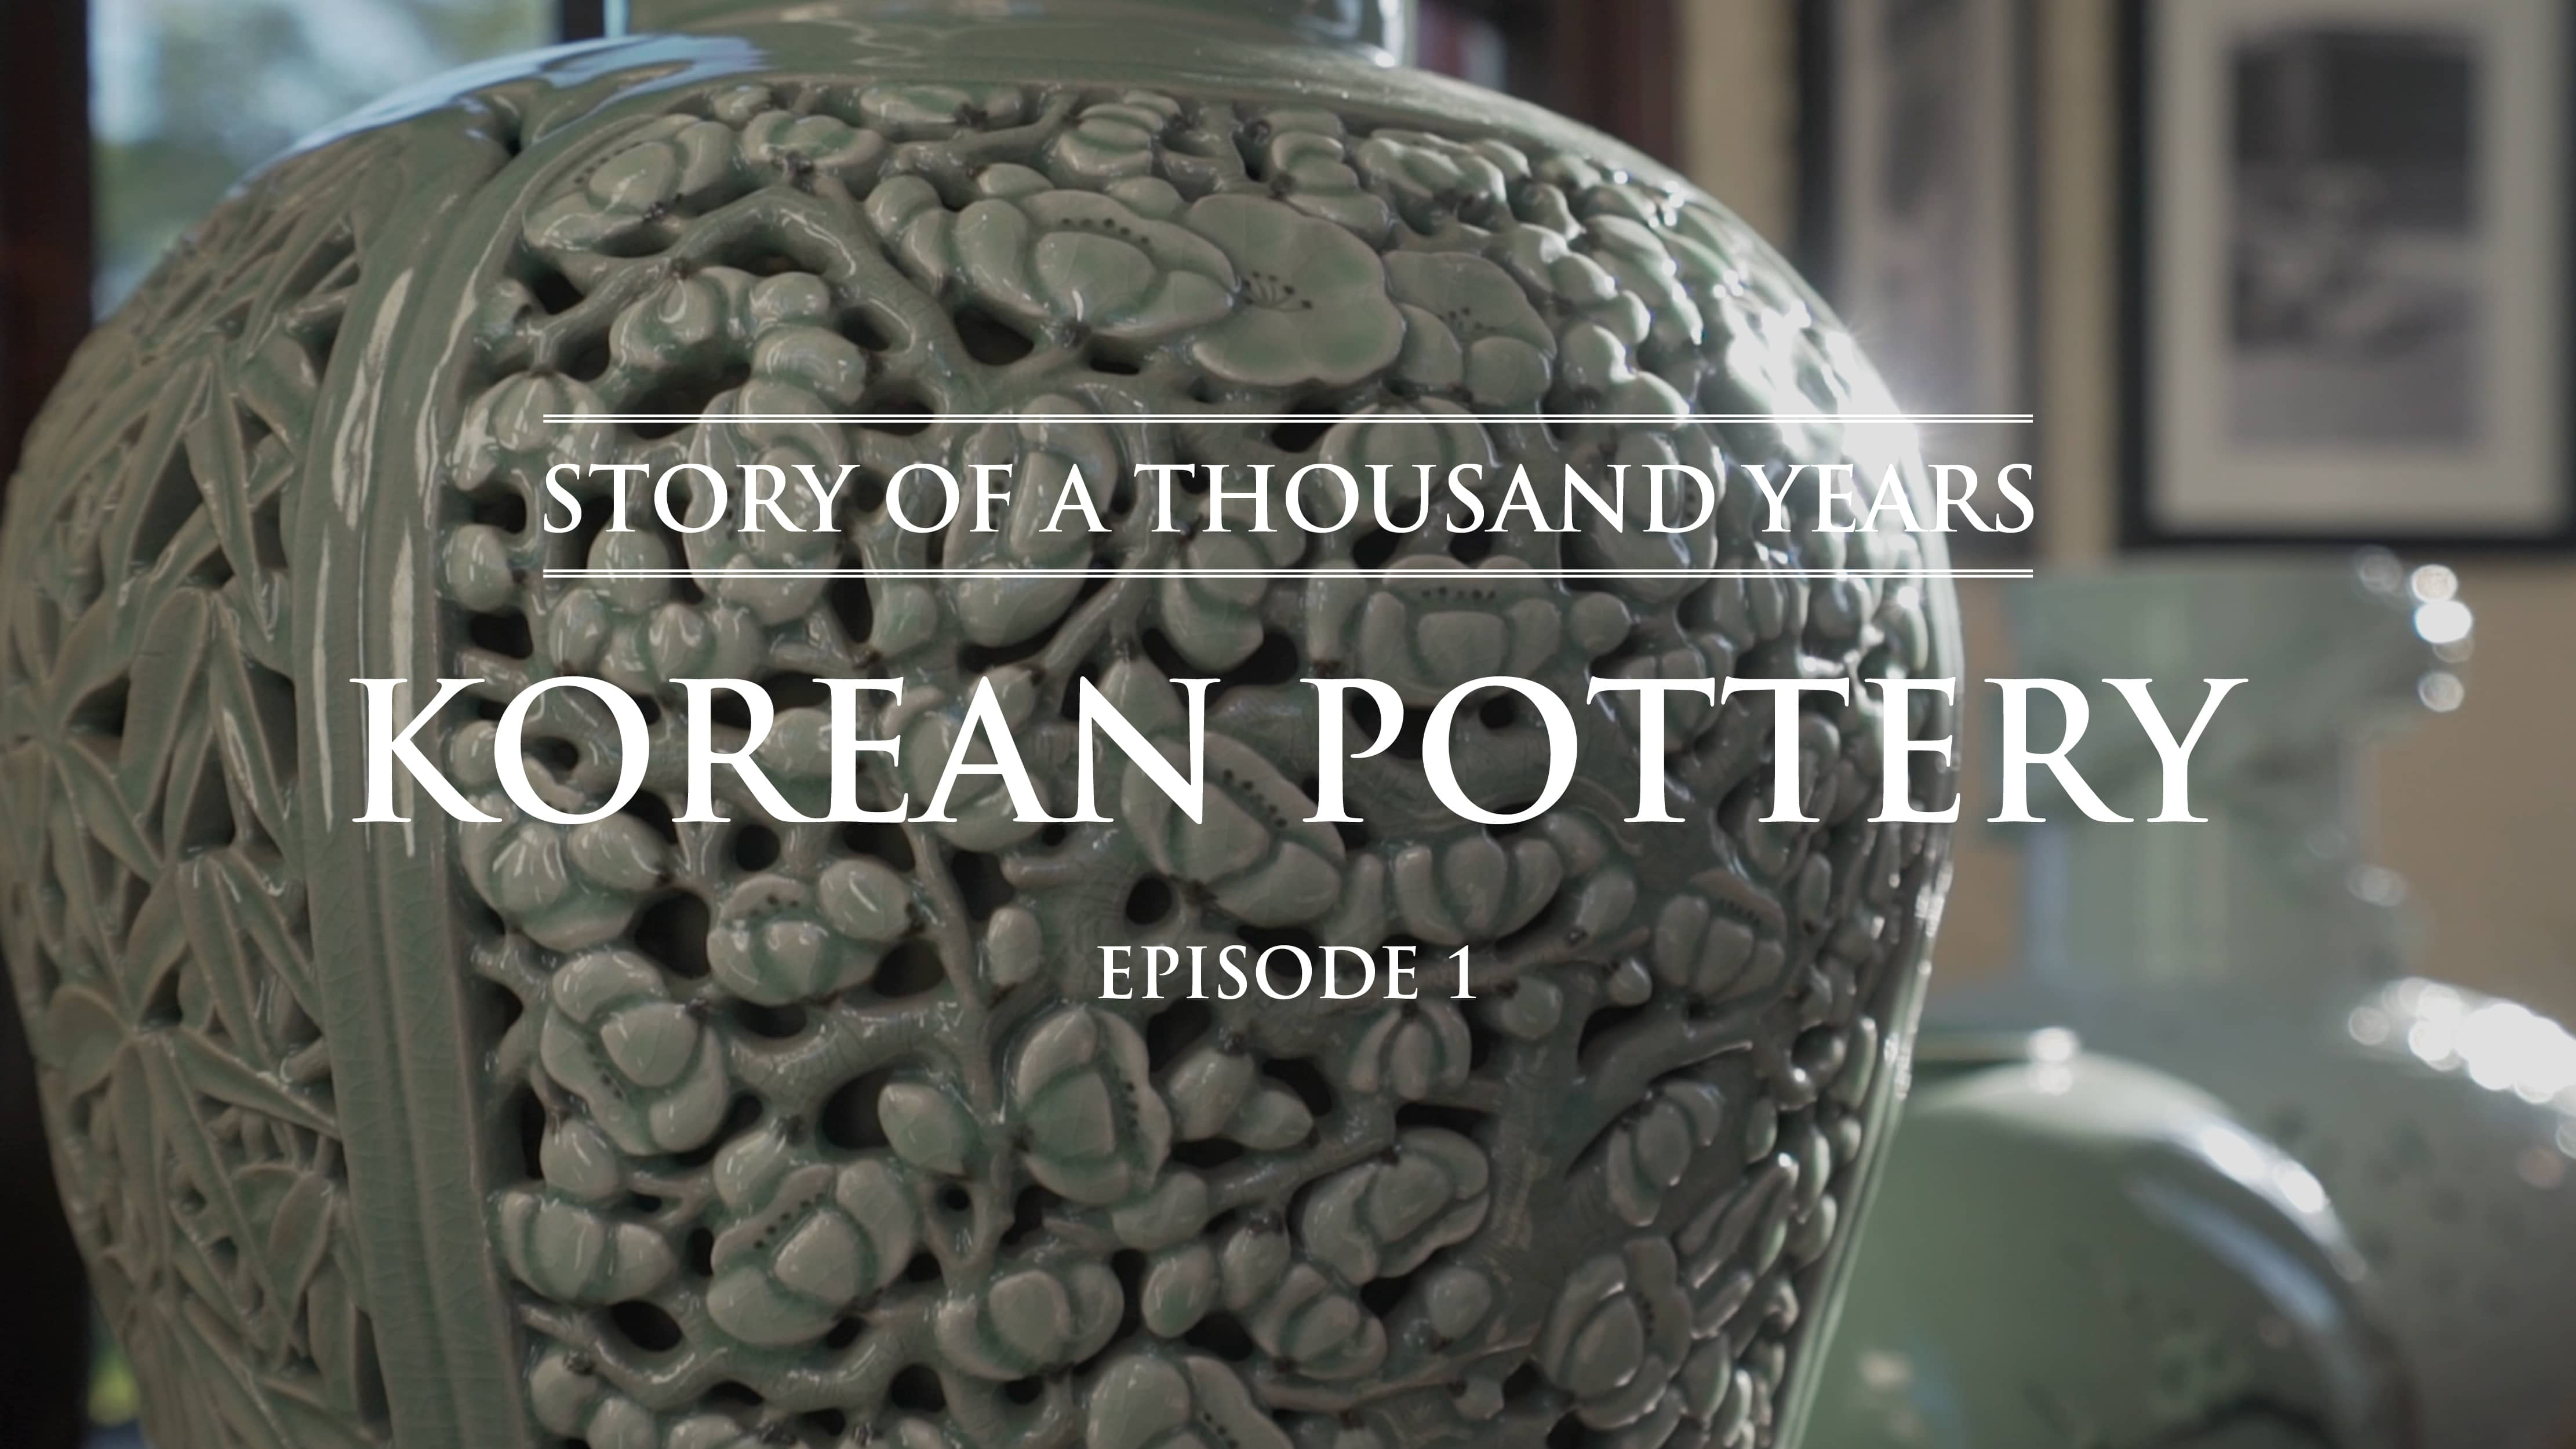 Korean Pottery- Story Of A Thousand Years Episode 1